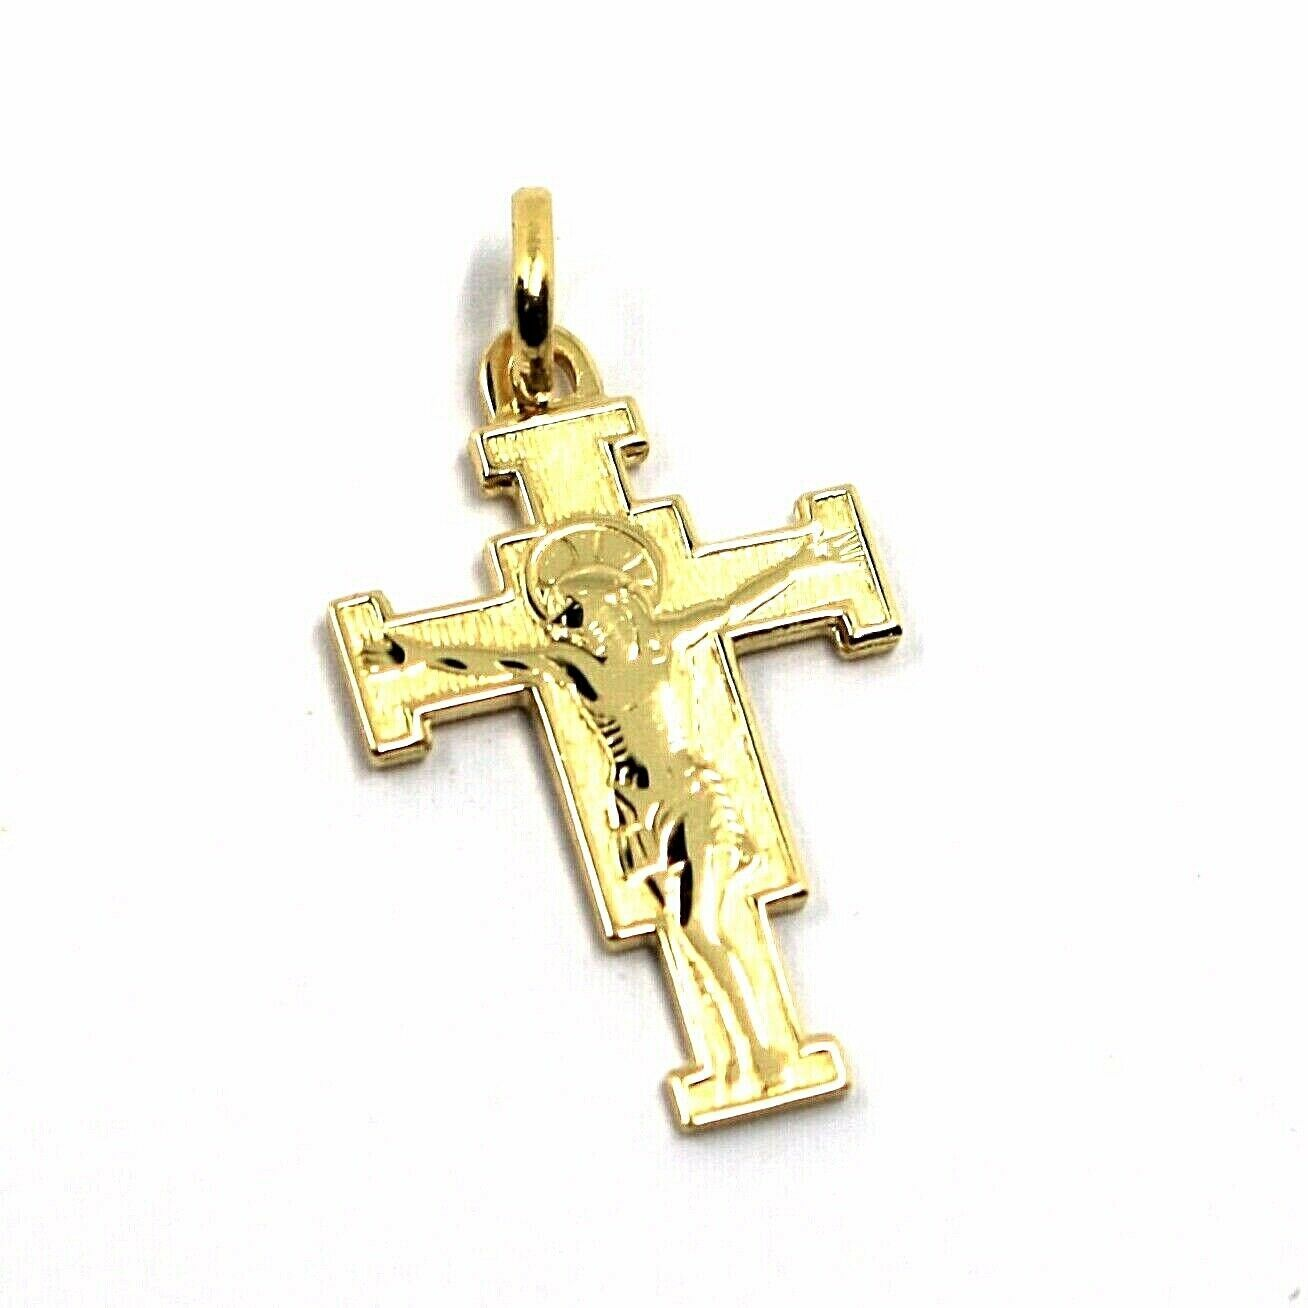 SOLID 18K YELLOW GOLD FLAT SAINT DAMIANO CROSS PENDANT, MADE IN ITALY, 0.9""